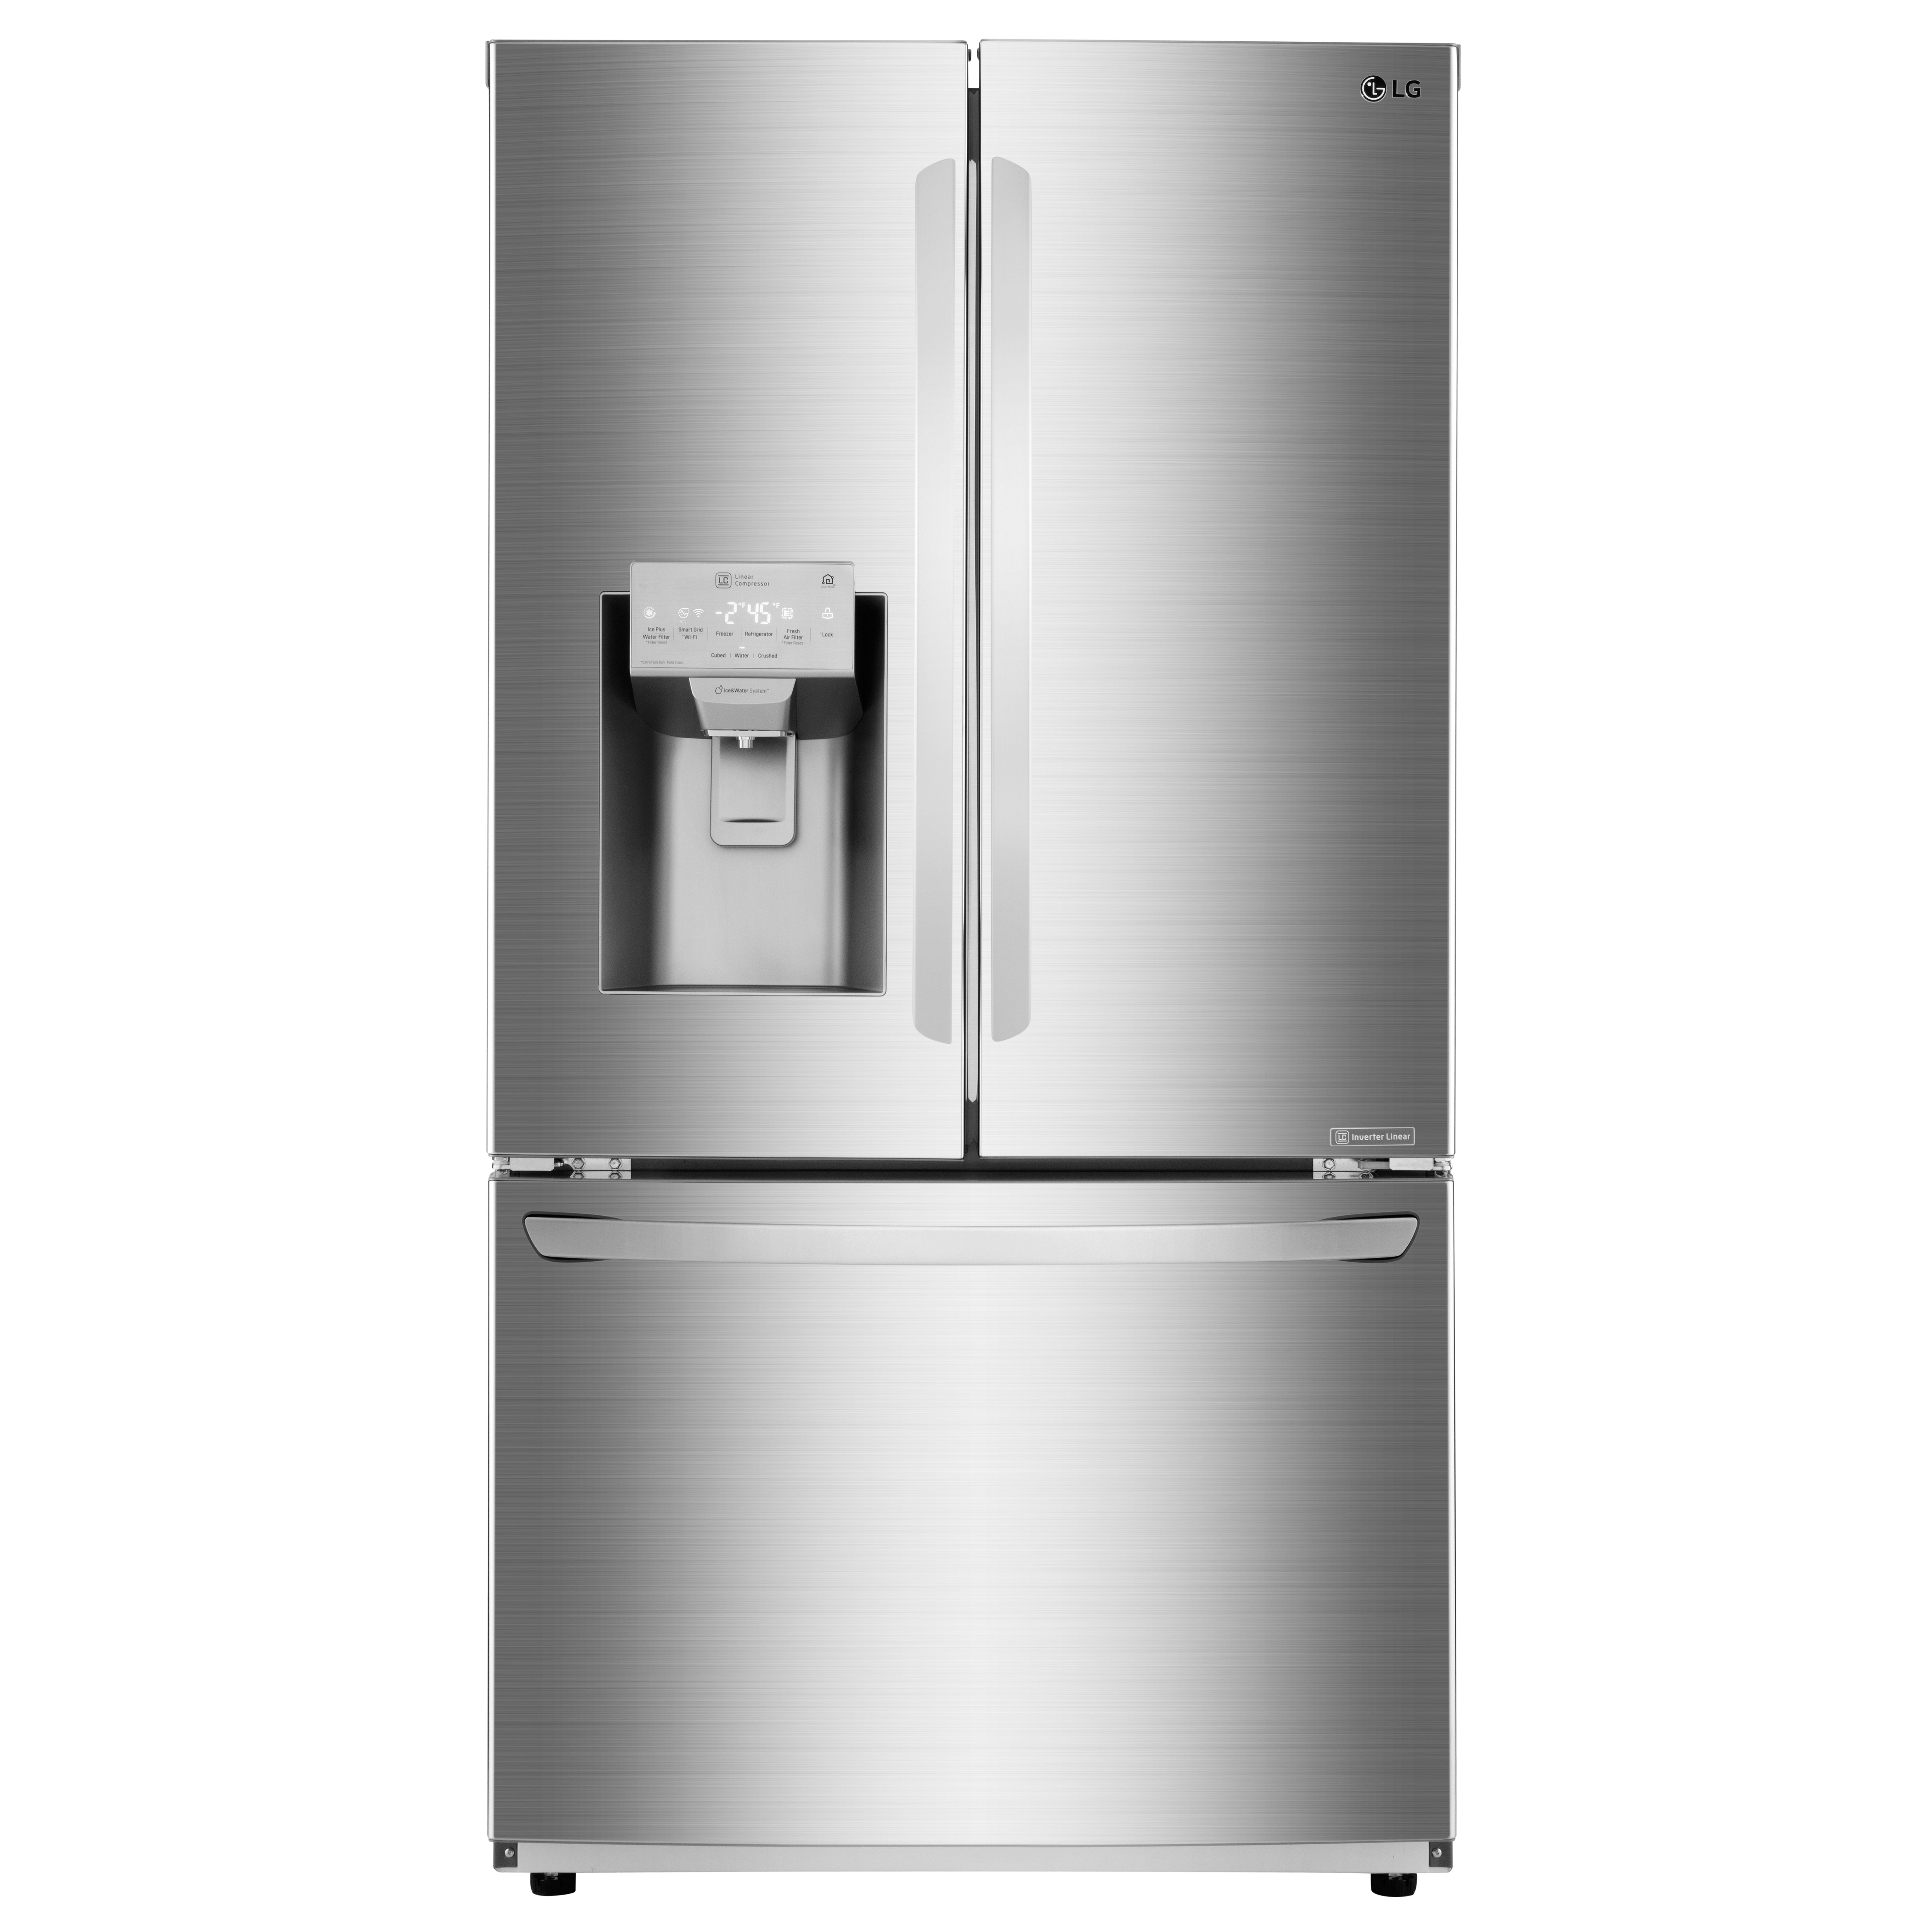 LG Refrigerator 36 StainlessSteel LFXC22526S in Stainless Steel color showcased by Corbeil Electro Store